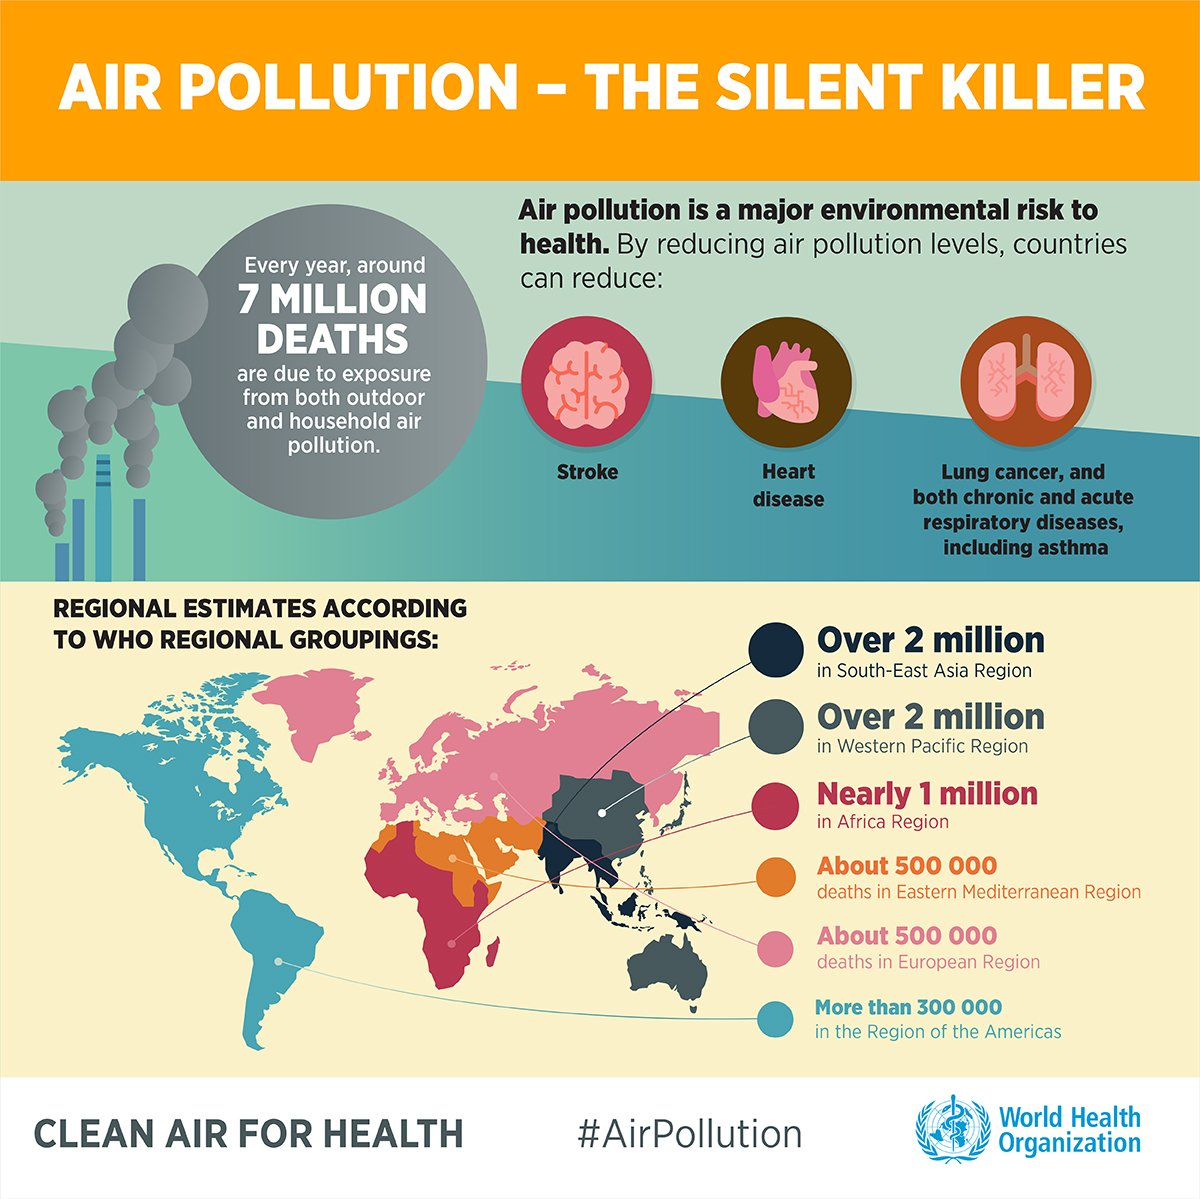 9 out of 10 people worldwide breathe polluted air.  https://t.co/Dcm5E39bsq    #BreatheLife